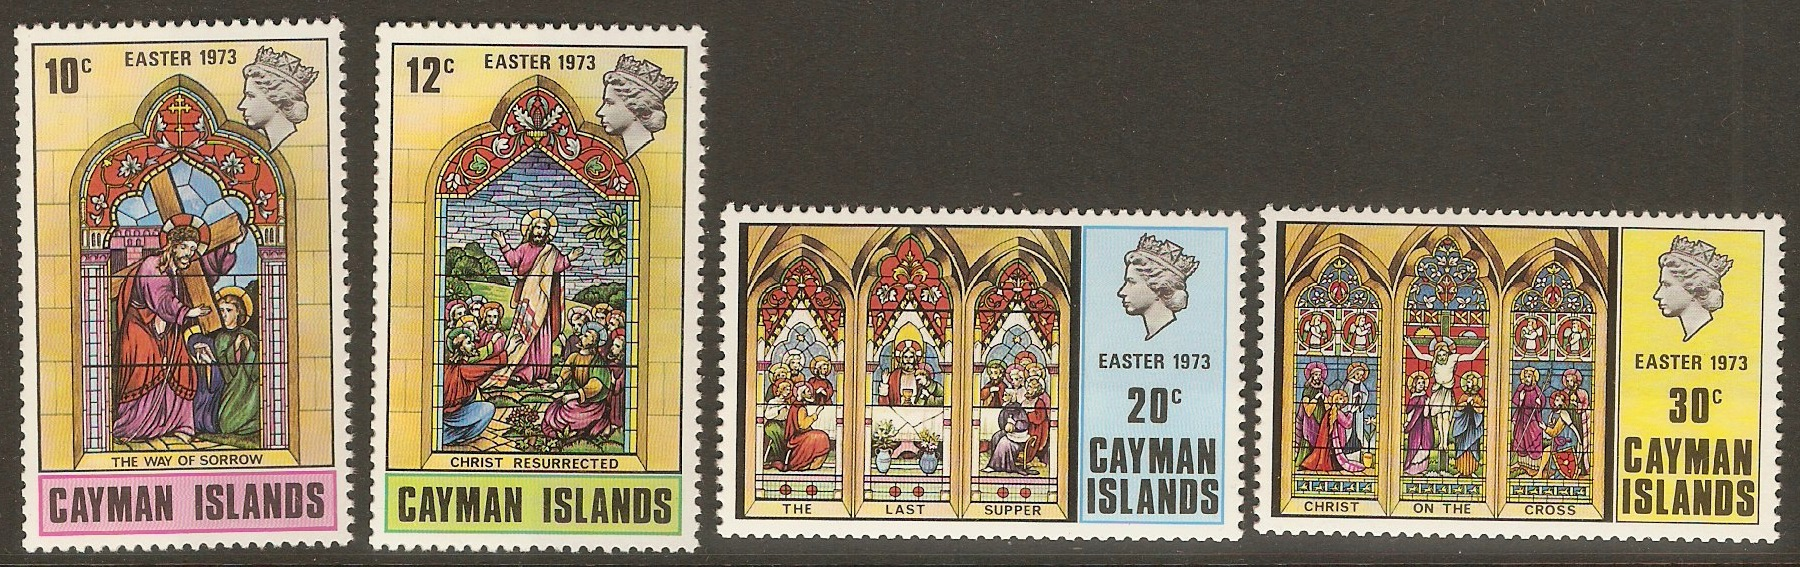 Cayman Islands 1973 Easter Stained Glass set. SG324-SG327.